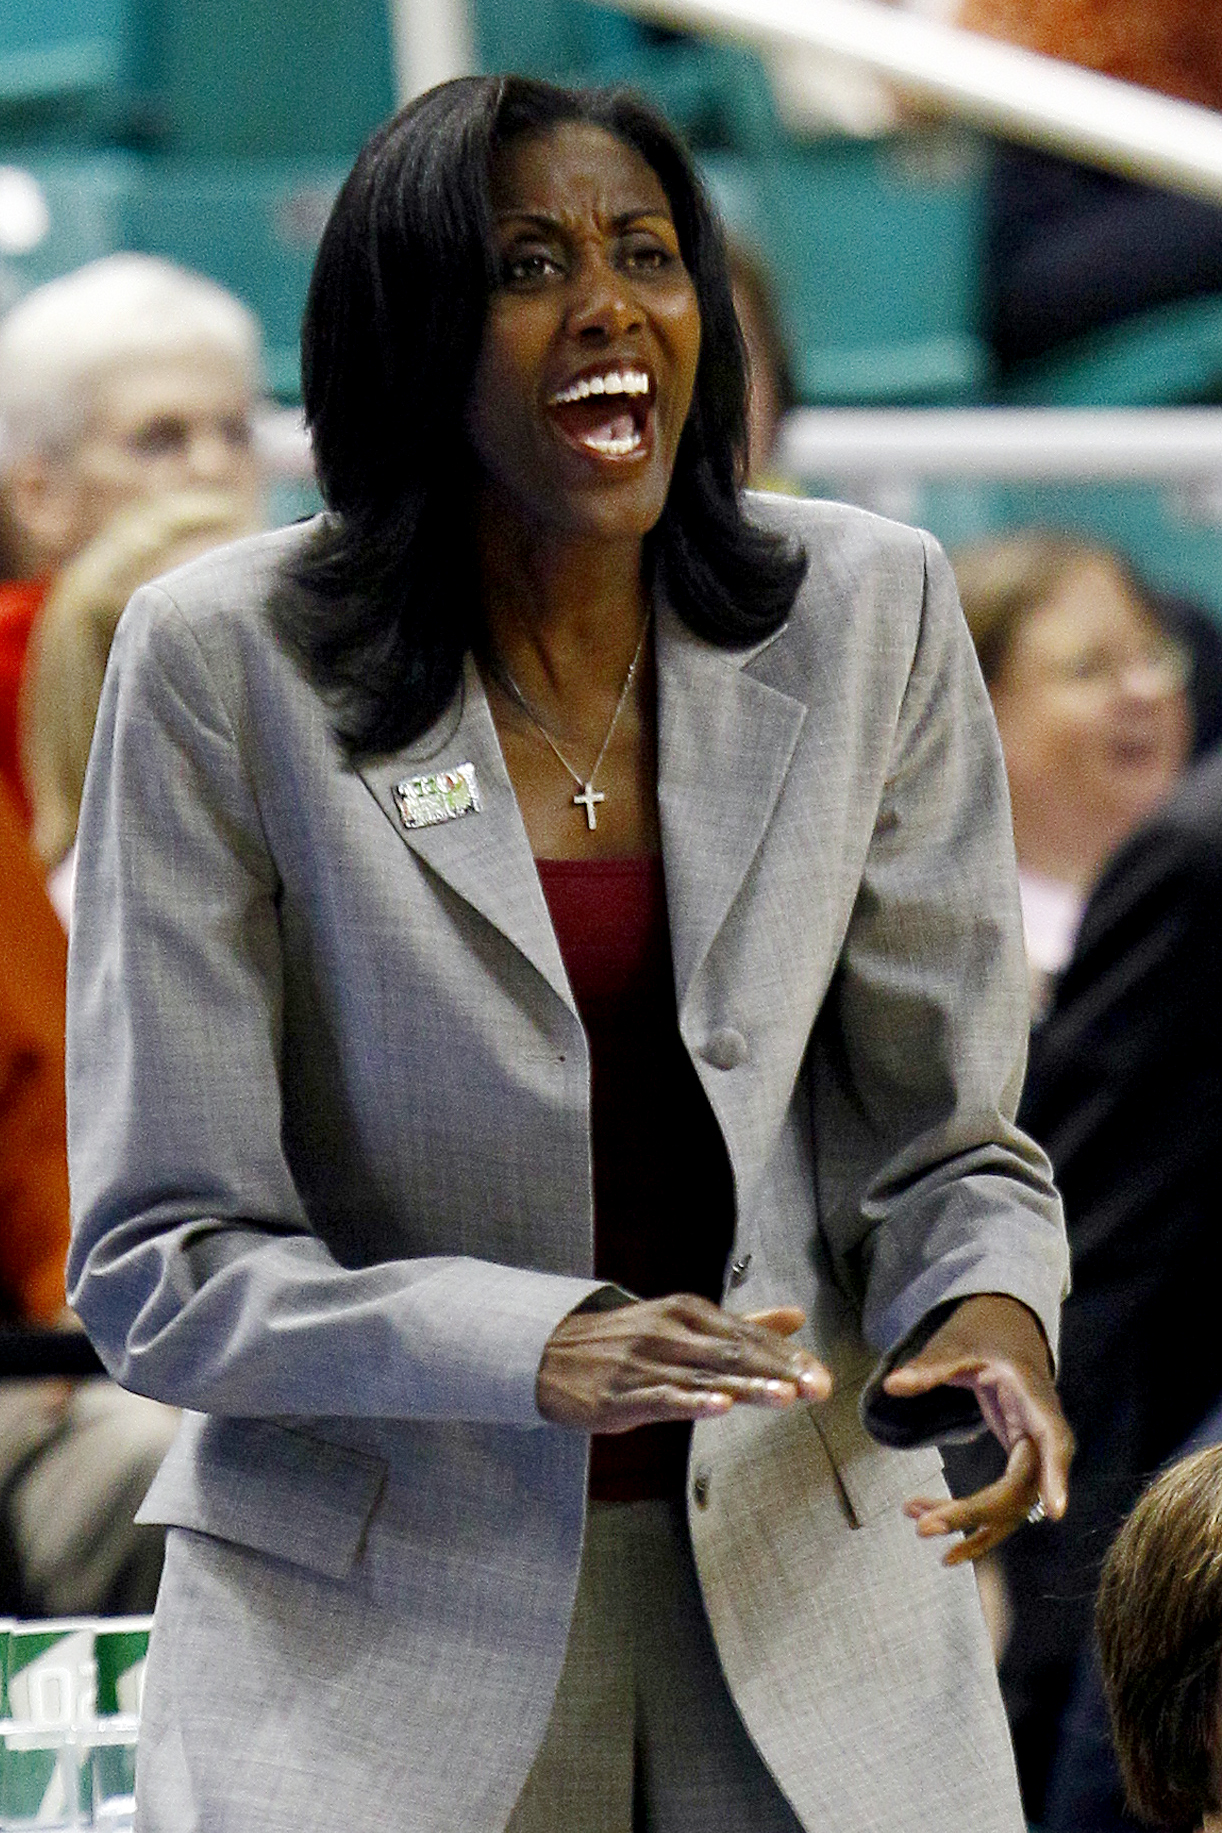 Boston College coach Sylvia Crawley yells during the first half of a first round NCAA college women's Atlantic Coast Conference basketball tournament game against Virginia in Greensboro, N.C., Thursday, March 1, 2012. Virginia won 72-41. (AP Photo/Gerry B